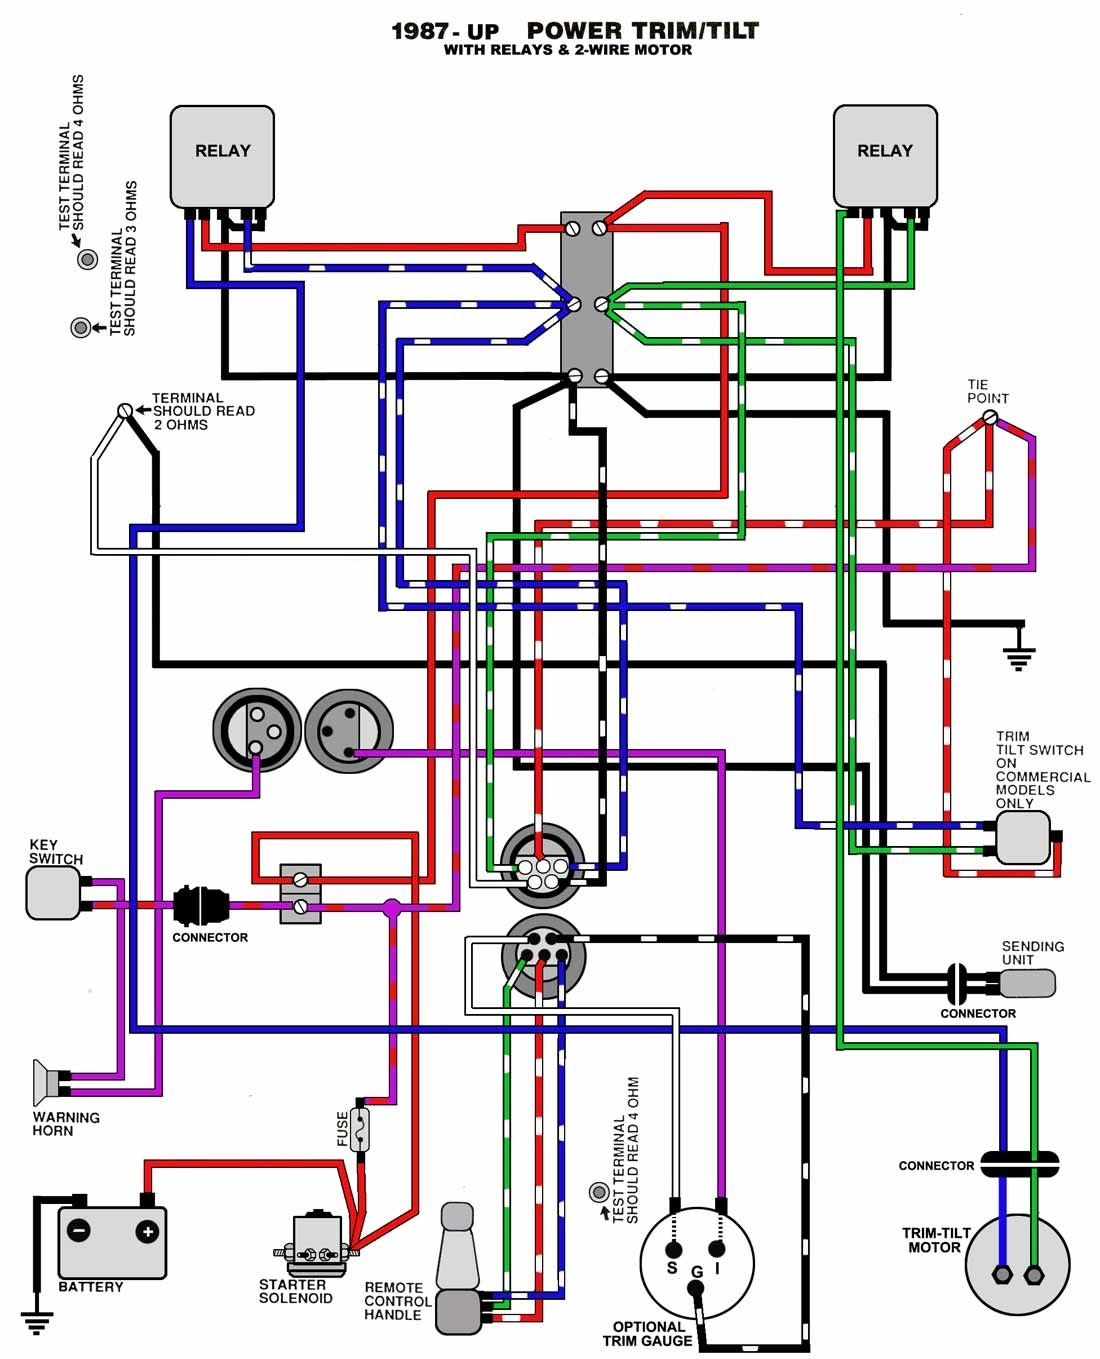 Diagram Tilt Relay 40 Hp Evinrude Wiring Diagram Full Version Hd Quality Wiring Diagram U Schematick2 Creasitionline It